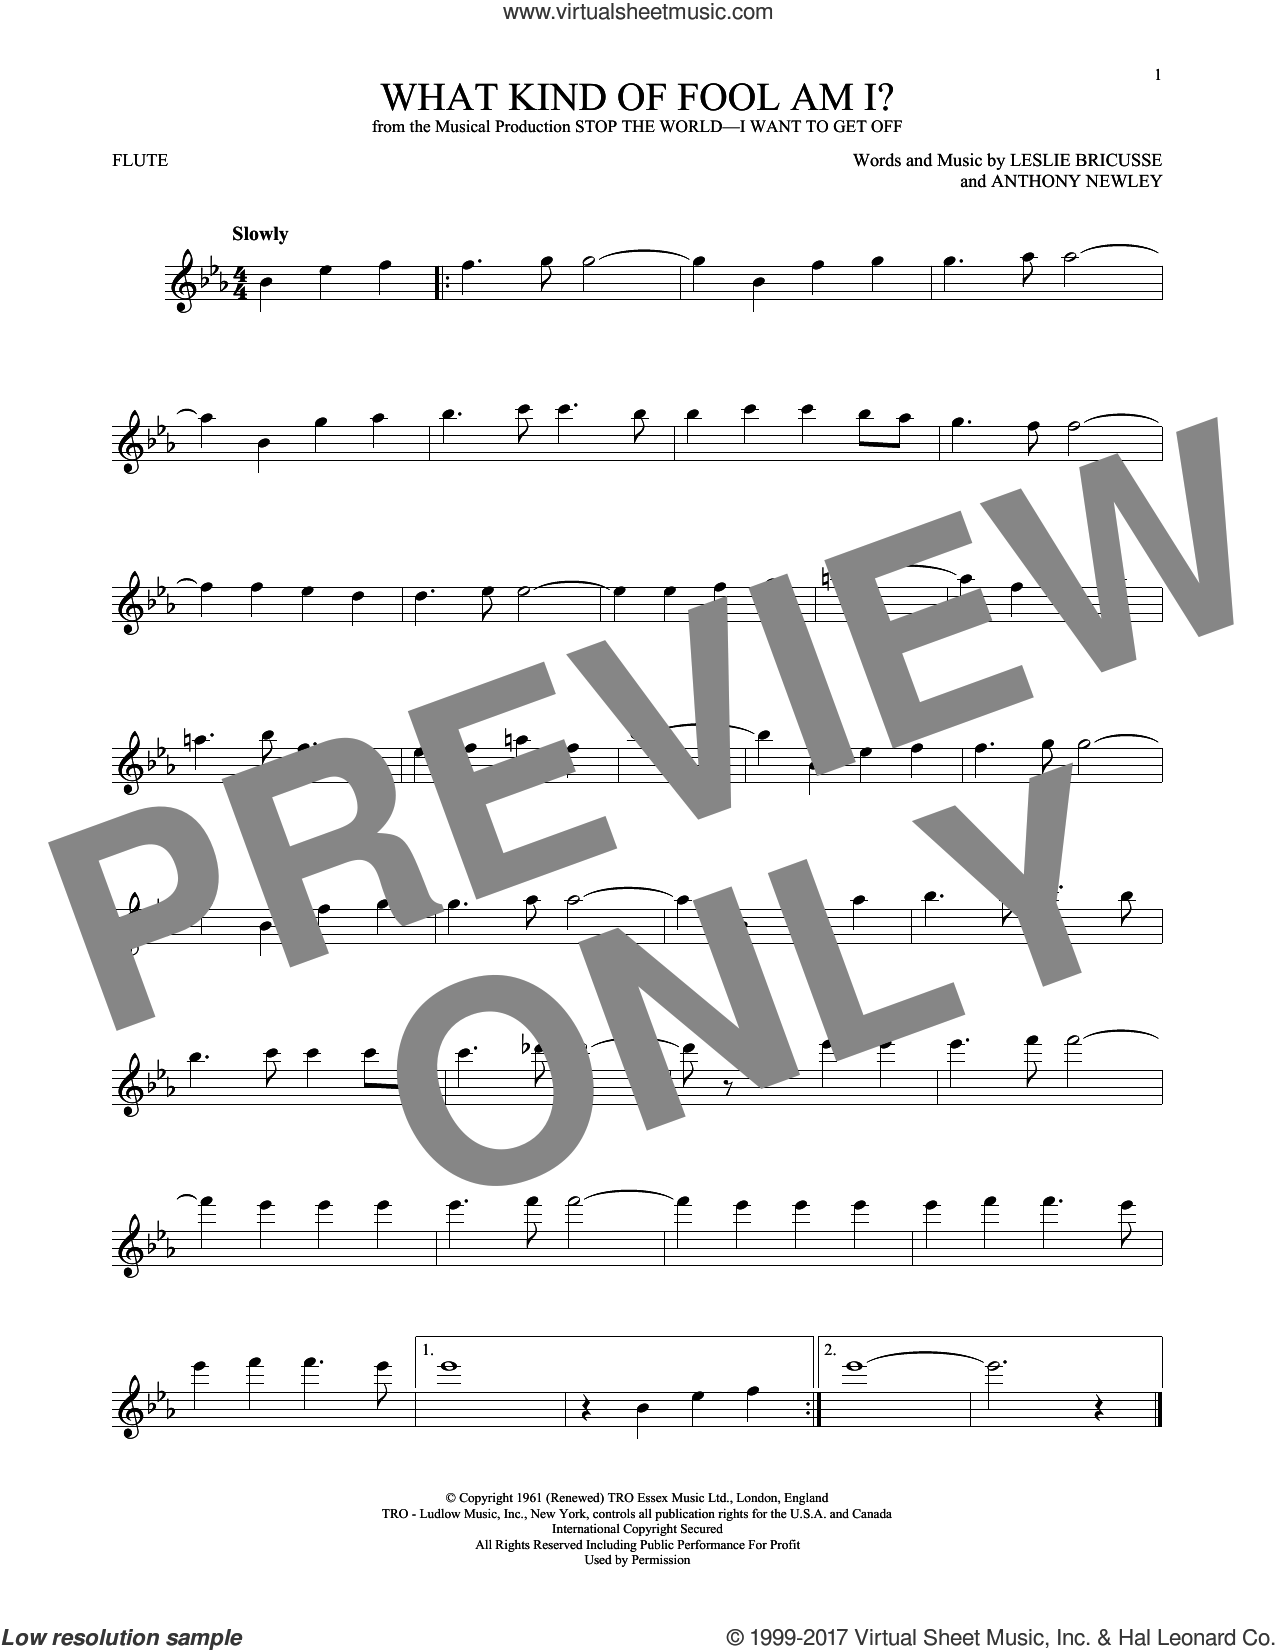 What Kind Of Fool Am I? sheet music for flute solo by Leslie Bricusse and Anthony Newley, intermediate skill level